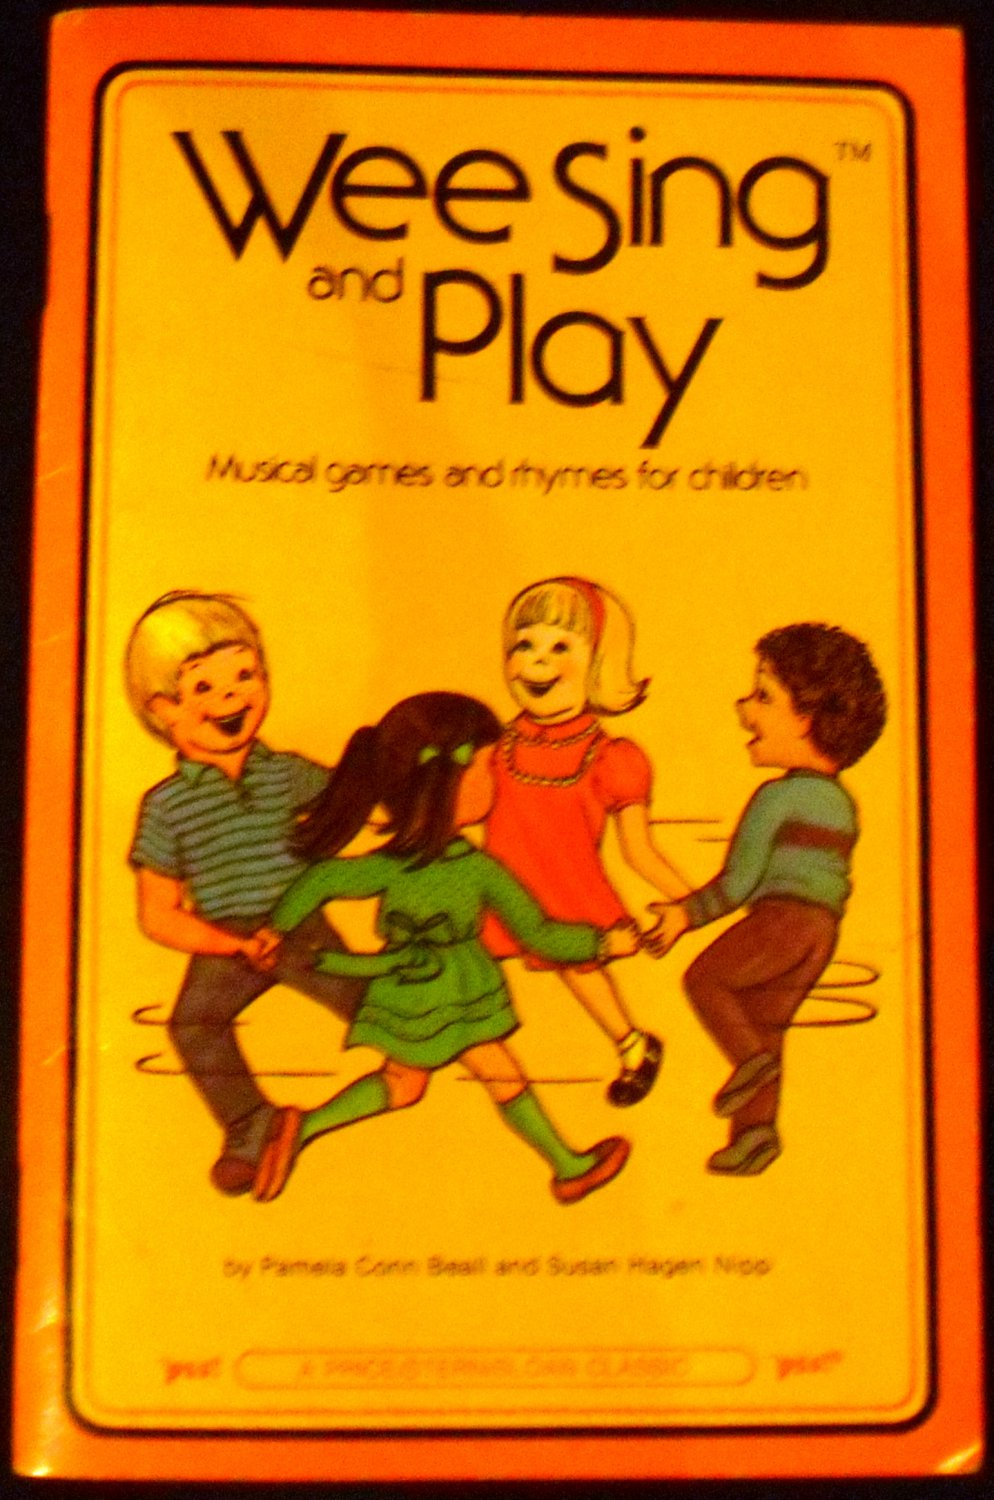 wee sing and play book by pamela conn beall and susan hagen nipp  1987  paperback